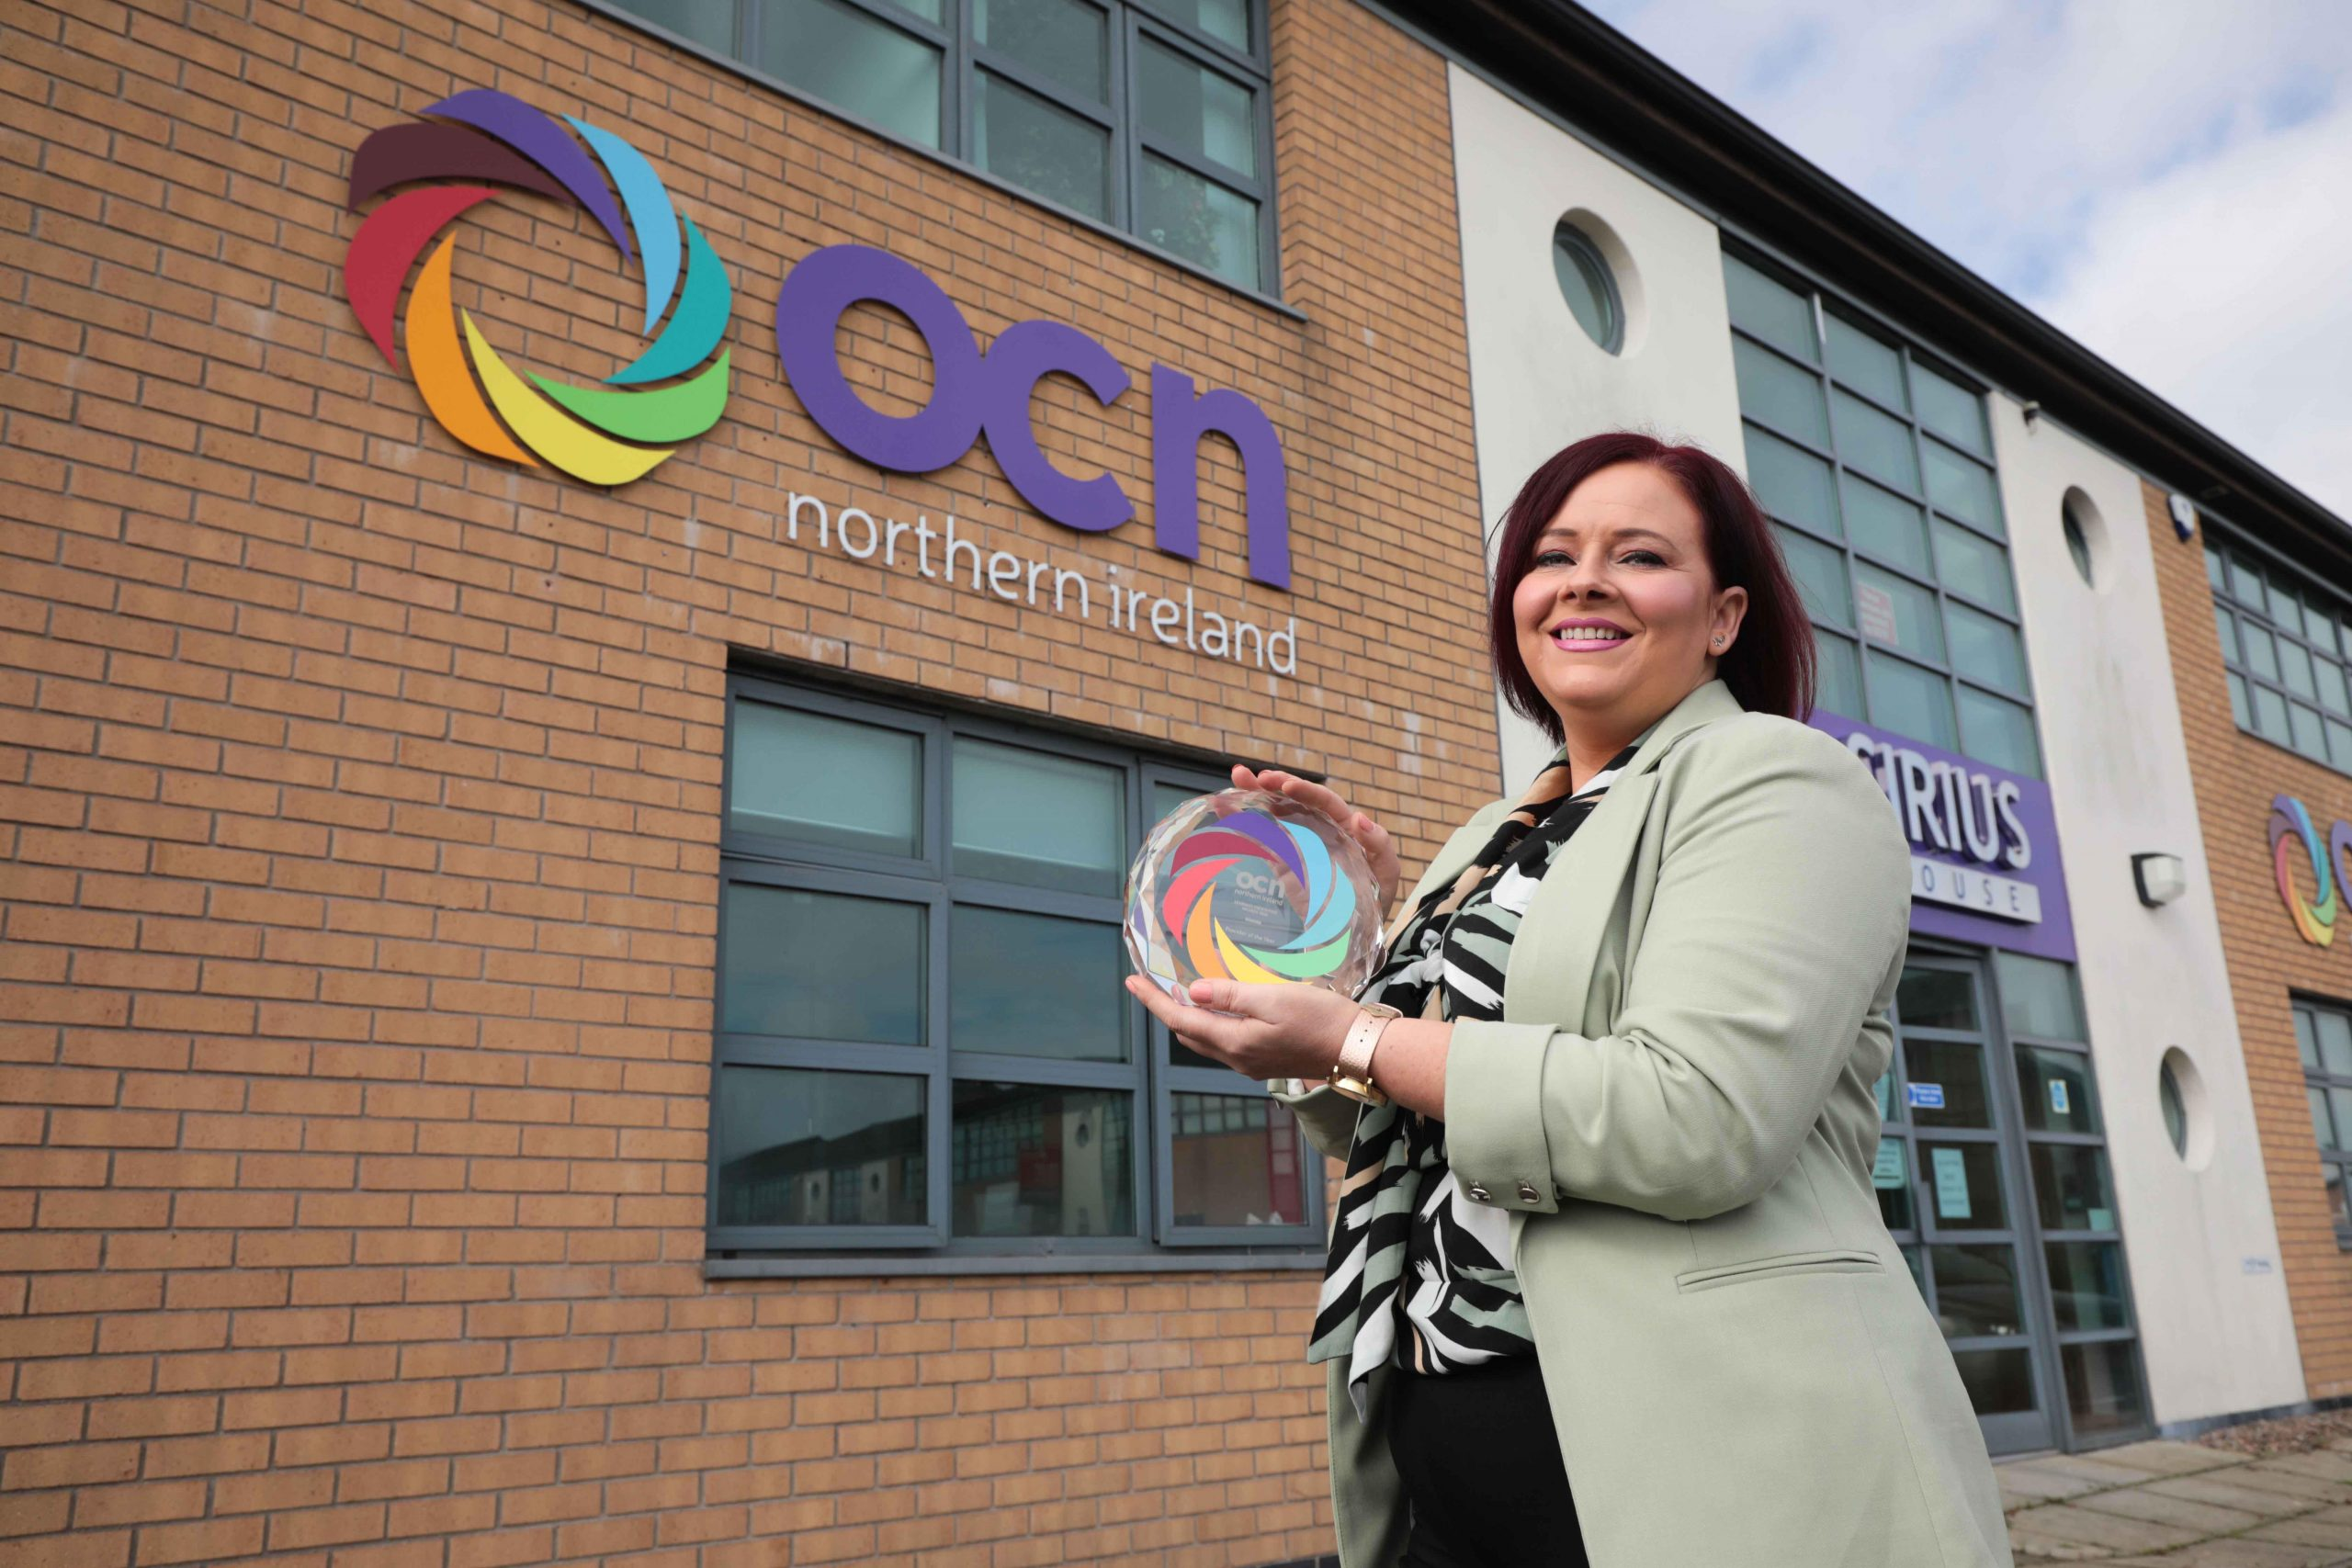 Cheryl Ball is pictured as she collects the Open College Network NI (OCN NI) award for Provider of the Year on behalf of the NOW Group. Earlier this year, OCN NI hosted its first ever Virtual Learning Endeavour Awards to celebrate the achievements of learners from all over Northern Ireland and now, those students have received their awards in person at the OCN NI headquarters in Belfast, adhering to social distancing advice. For more information on OCN NI go to https://www.ocnni.org.uk/